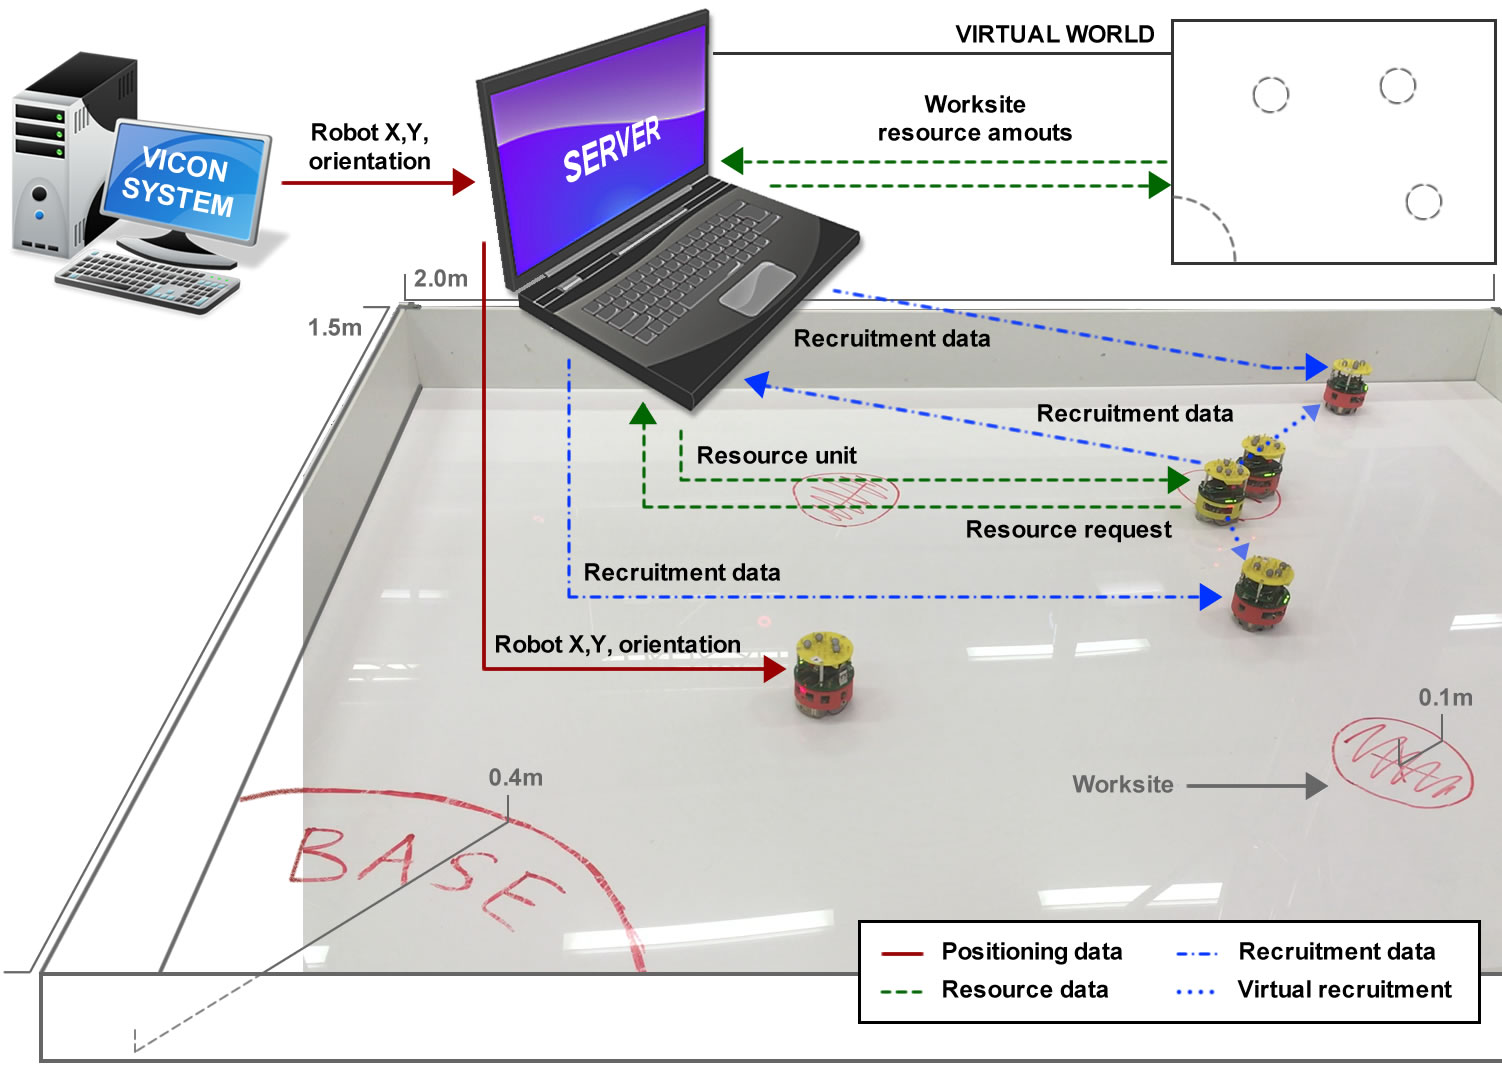 Experimental setup with e-puck robots and the VICON system